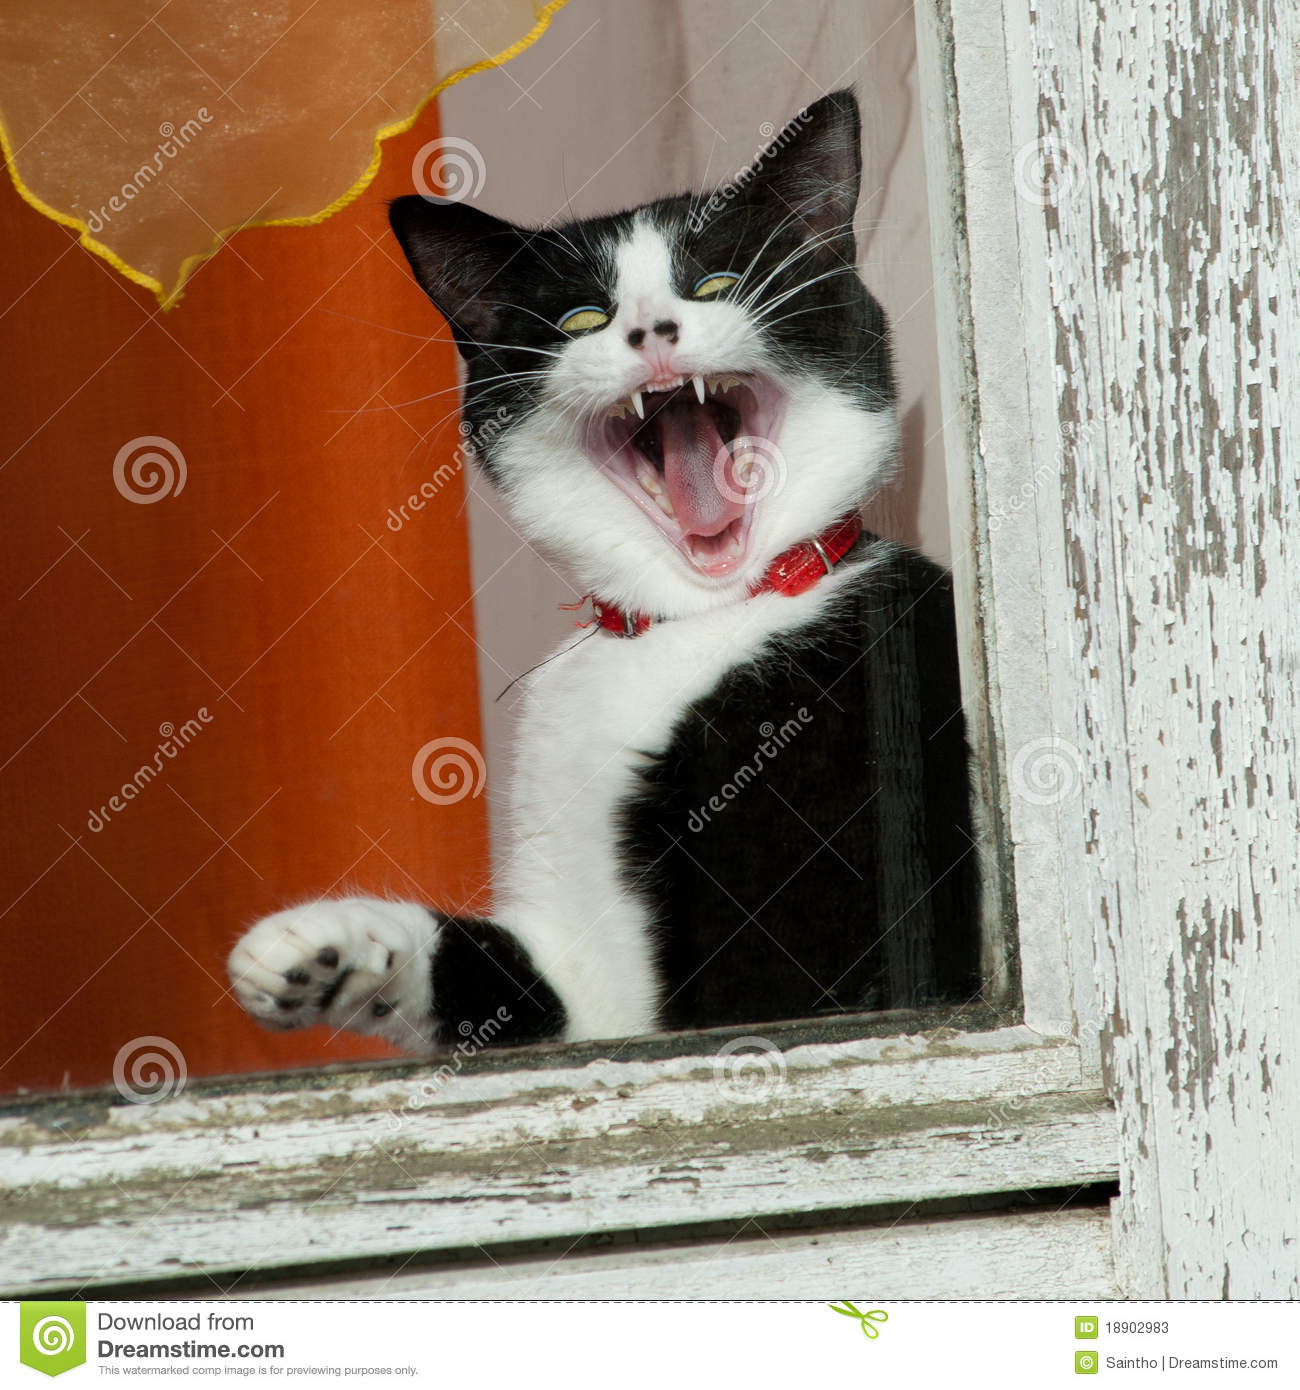 Amazing Cat: Amazing Funny Cat Stock Photos